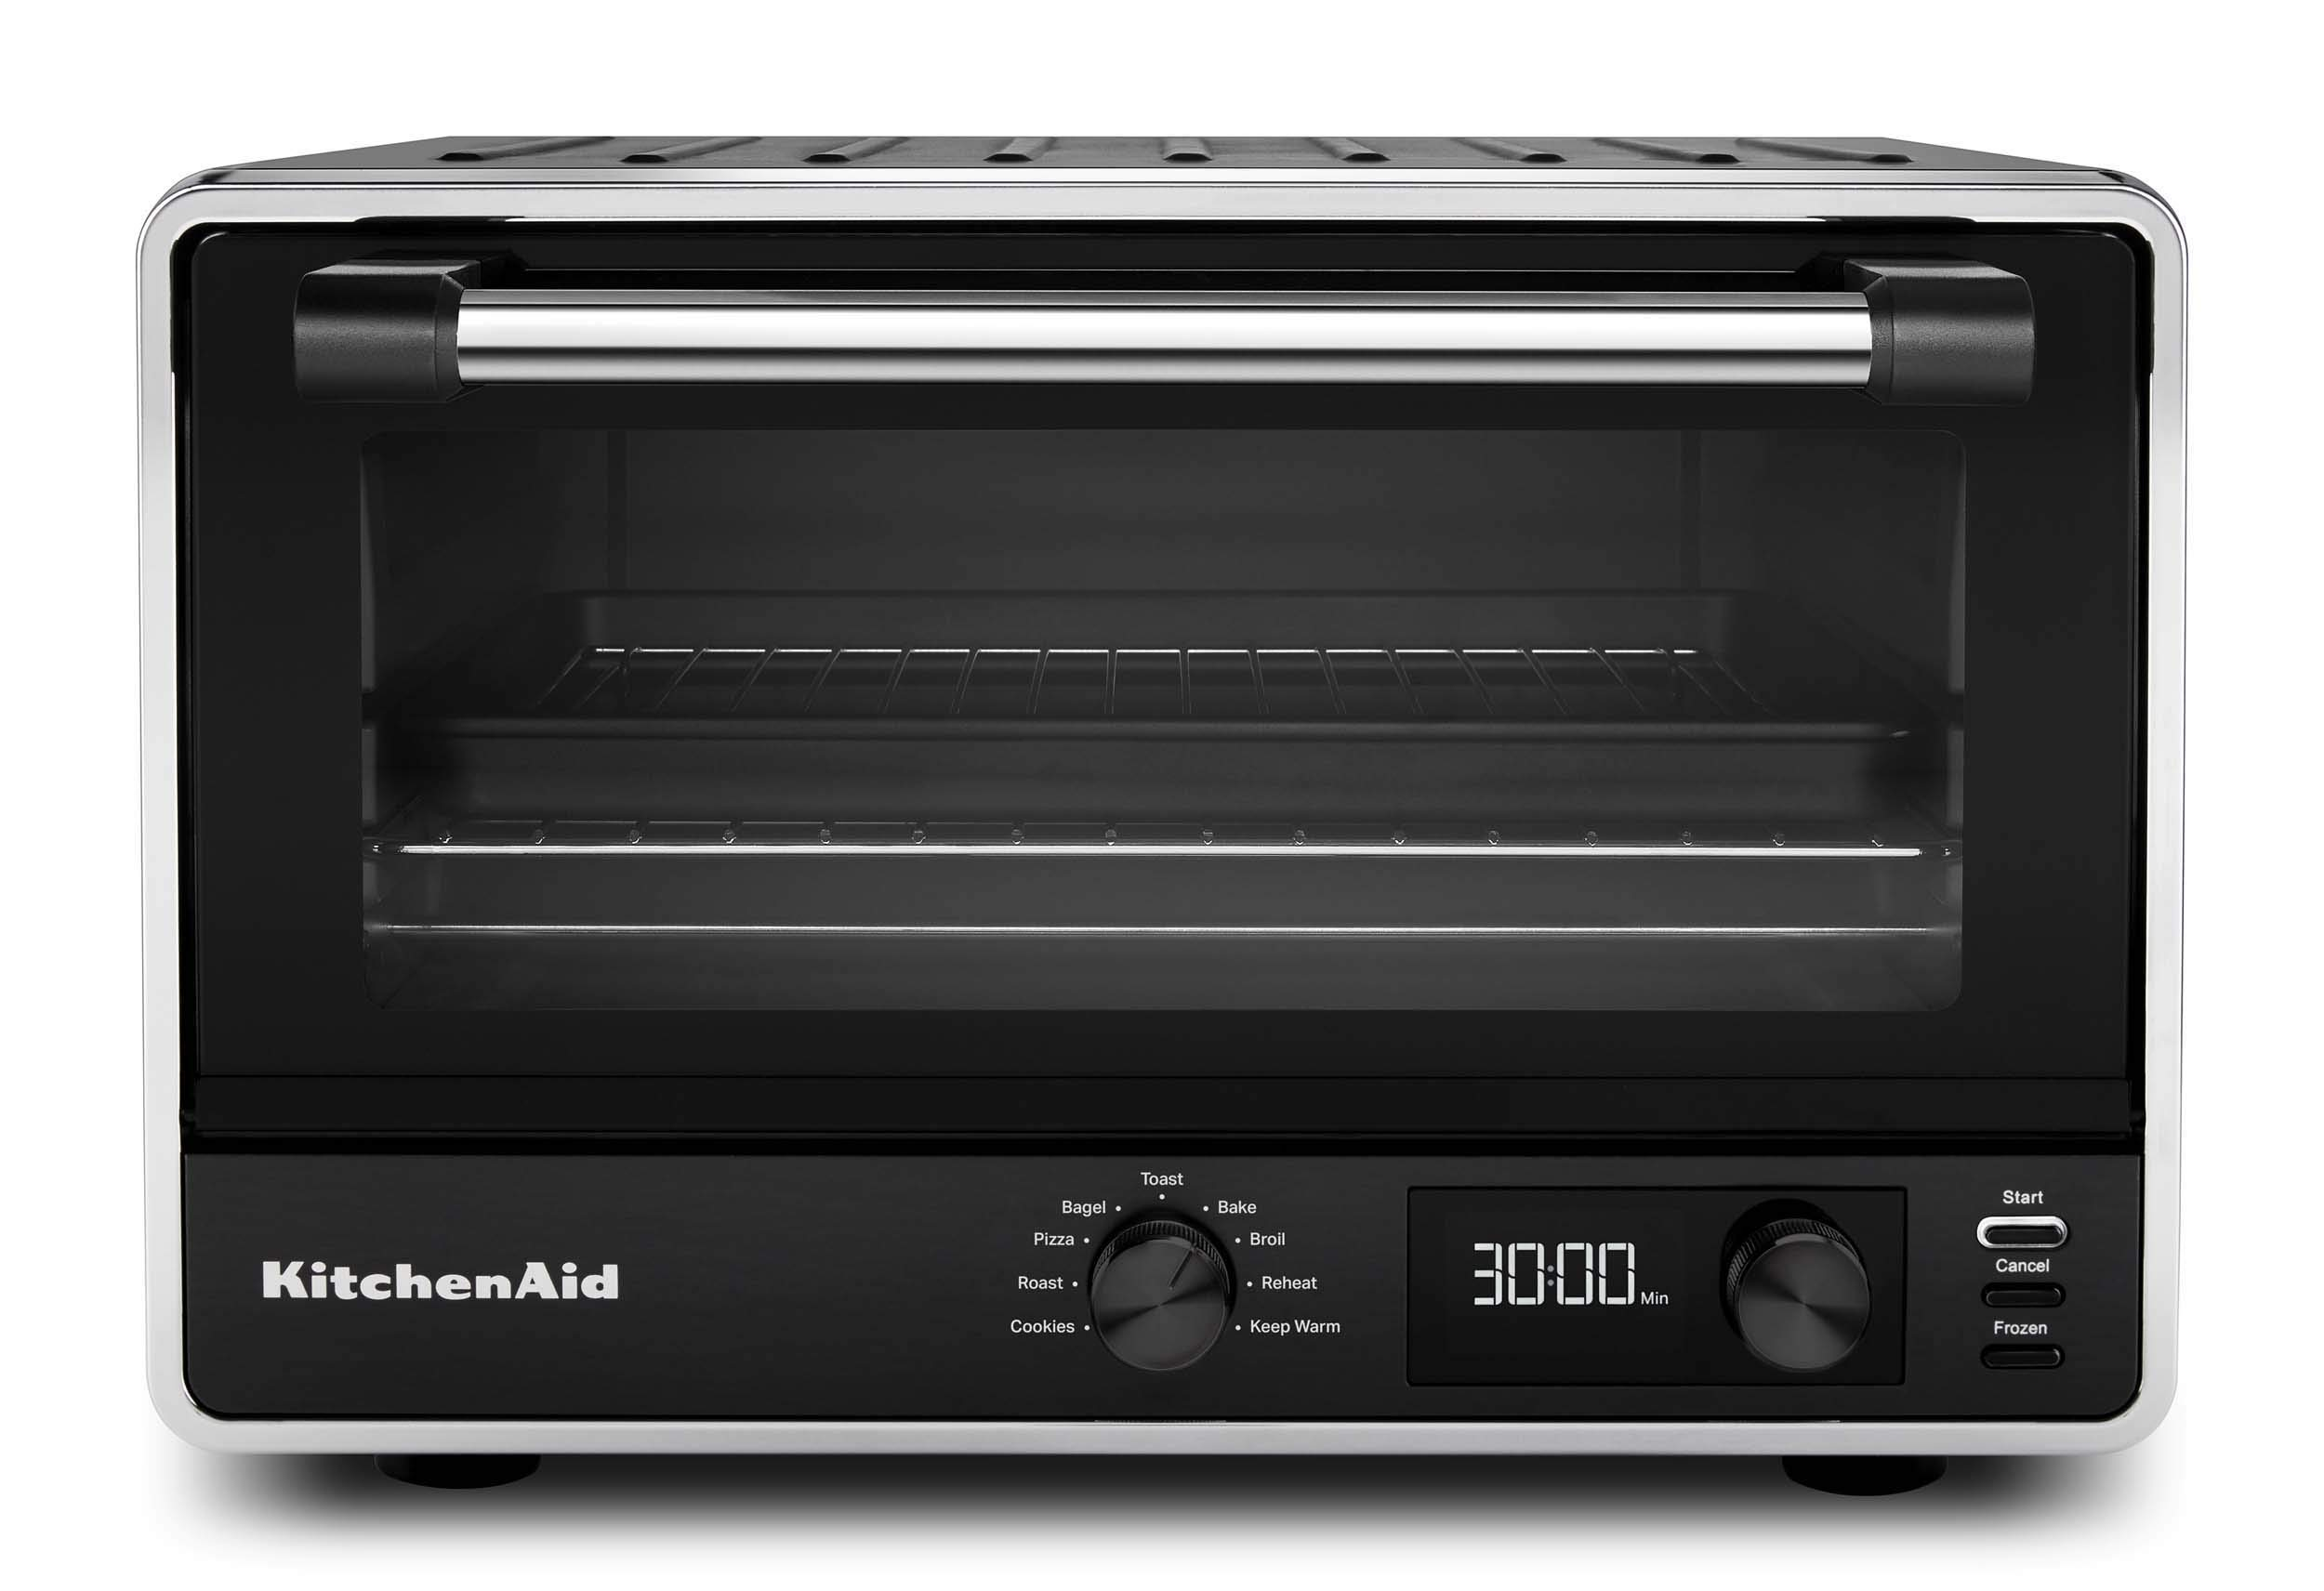 KitchenAid KCO211BM Digital Countertop Toaster Oven, Black Matte by KitchenAid